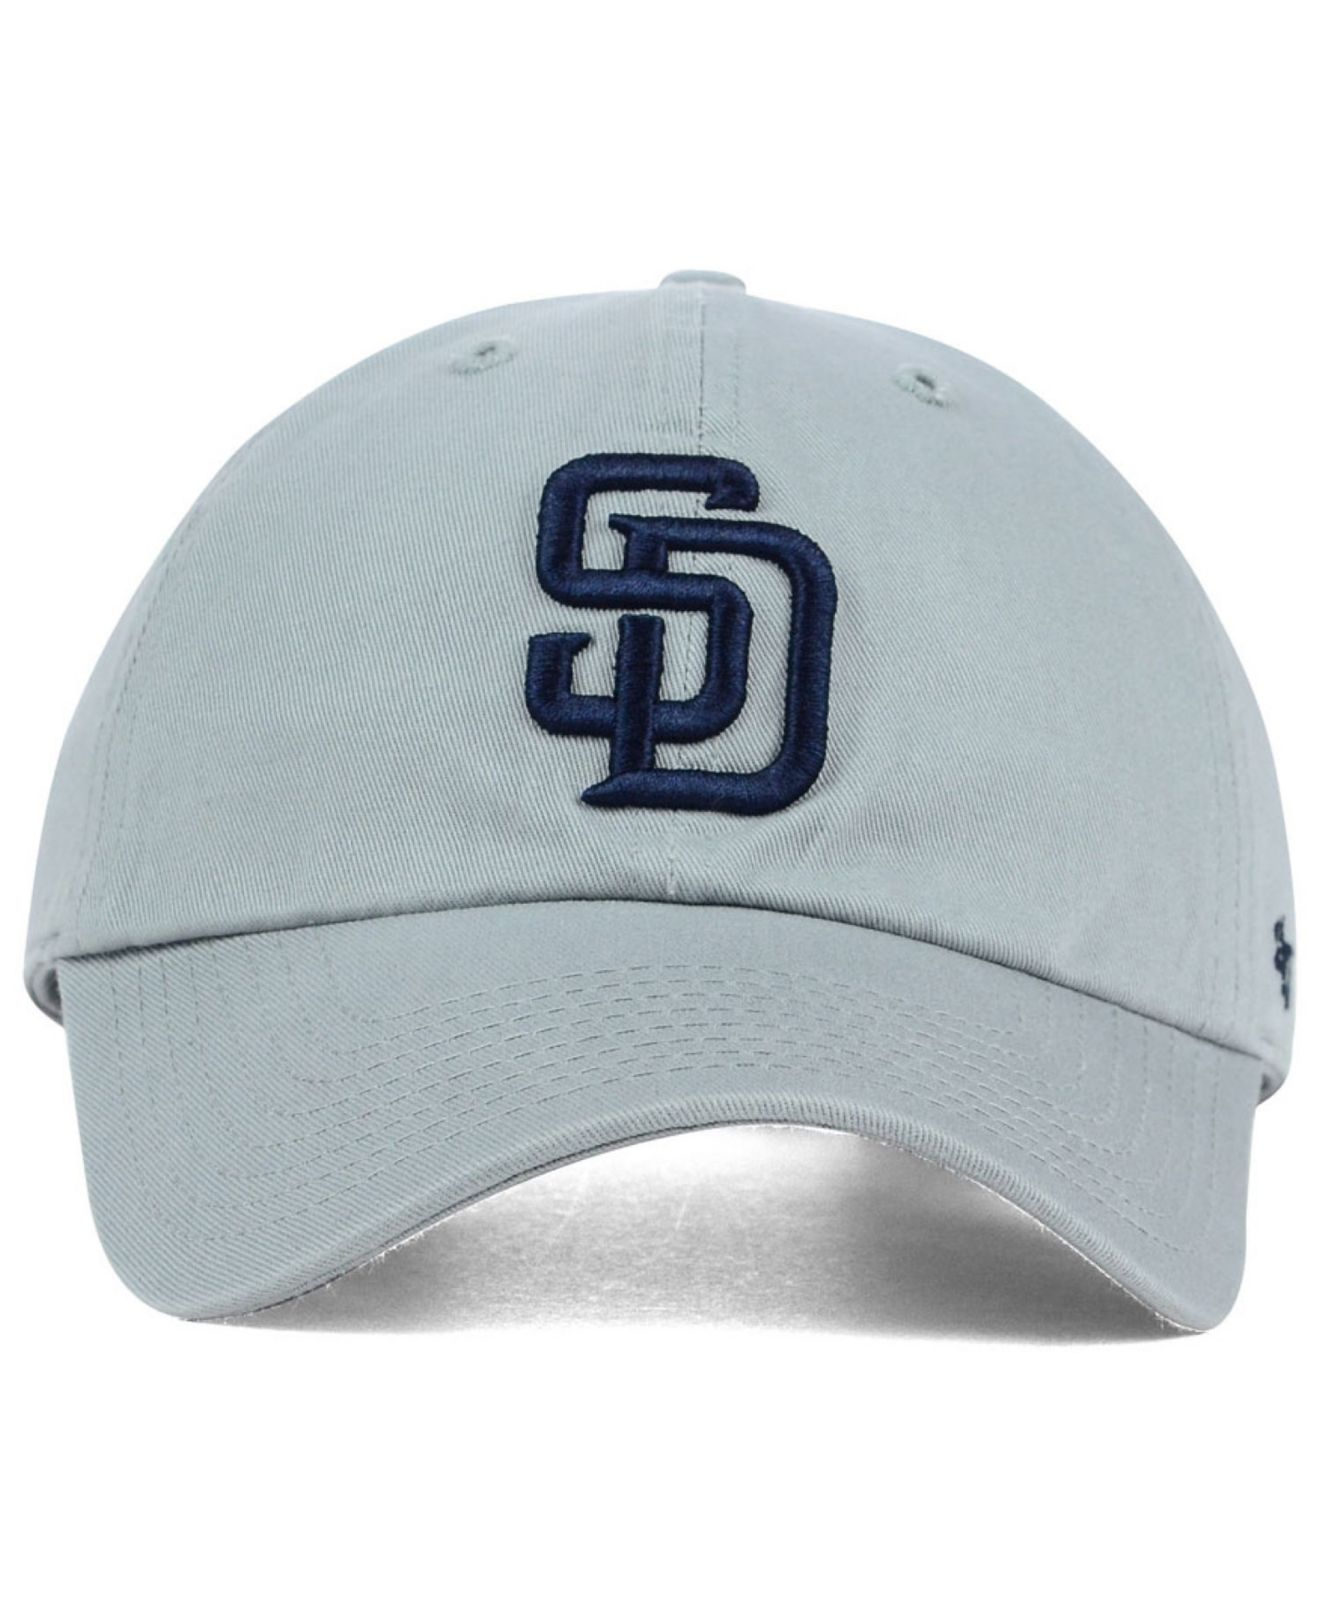 best loved 553e5 2c649 ... low price authentic san diego padres new era mlb blackout 39thirty cap  25c84 8190d purchase lyst